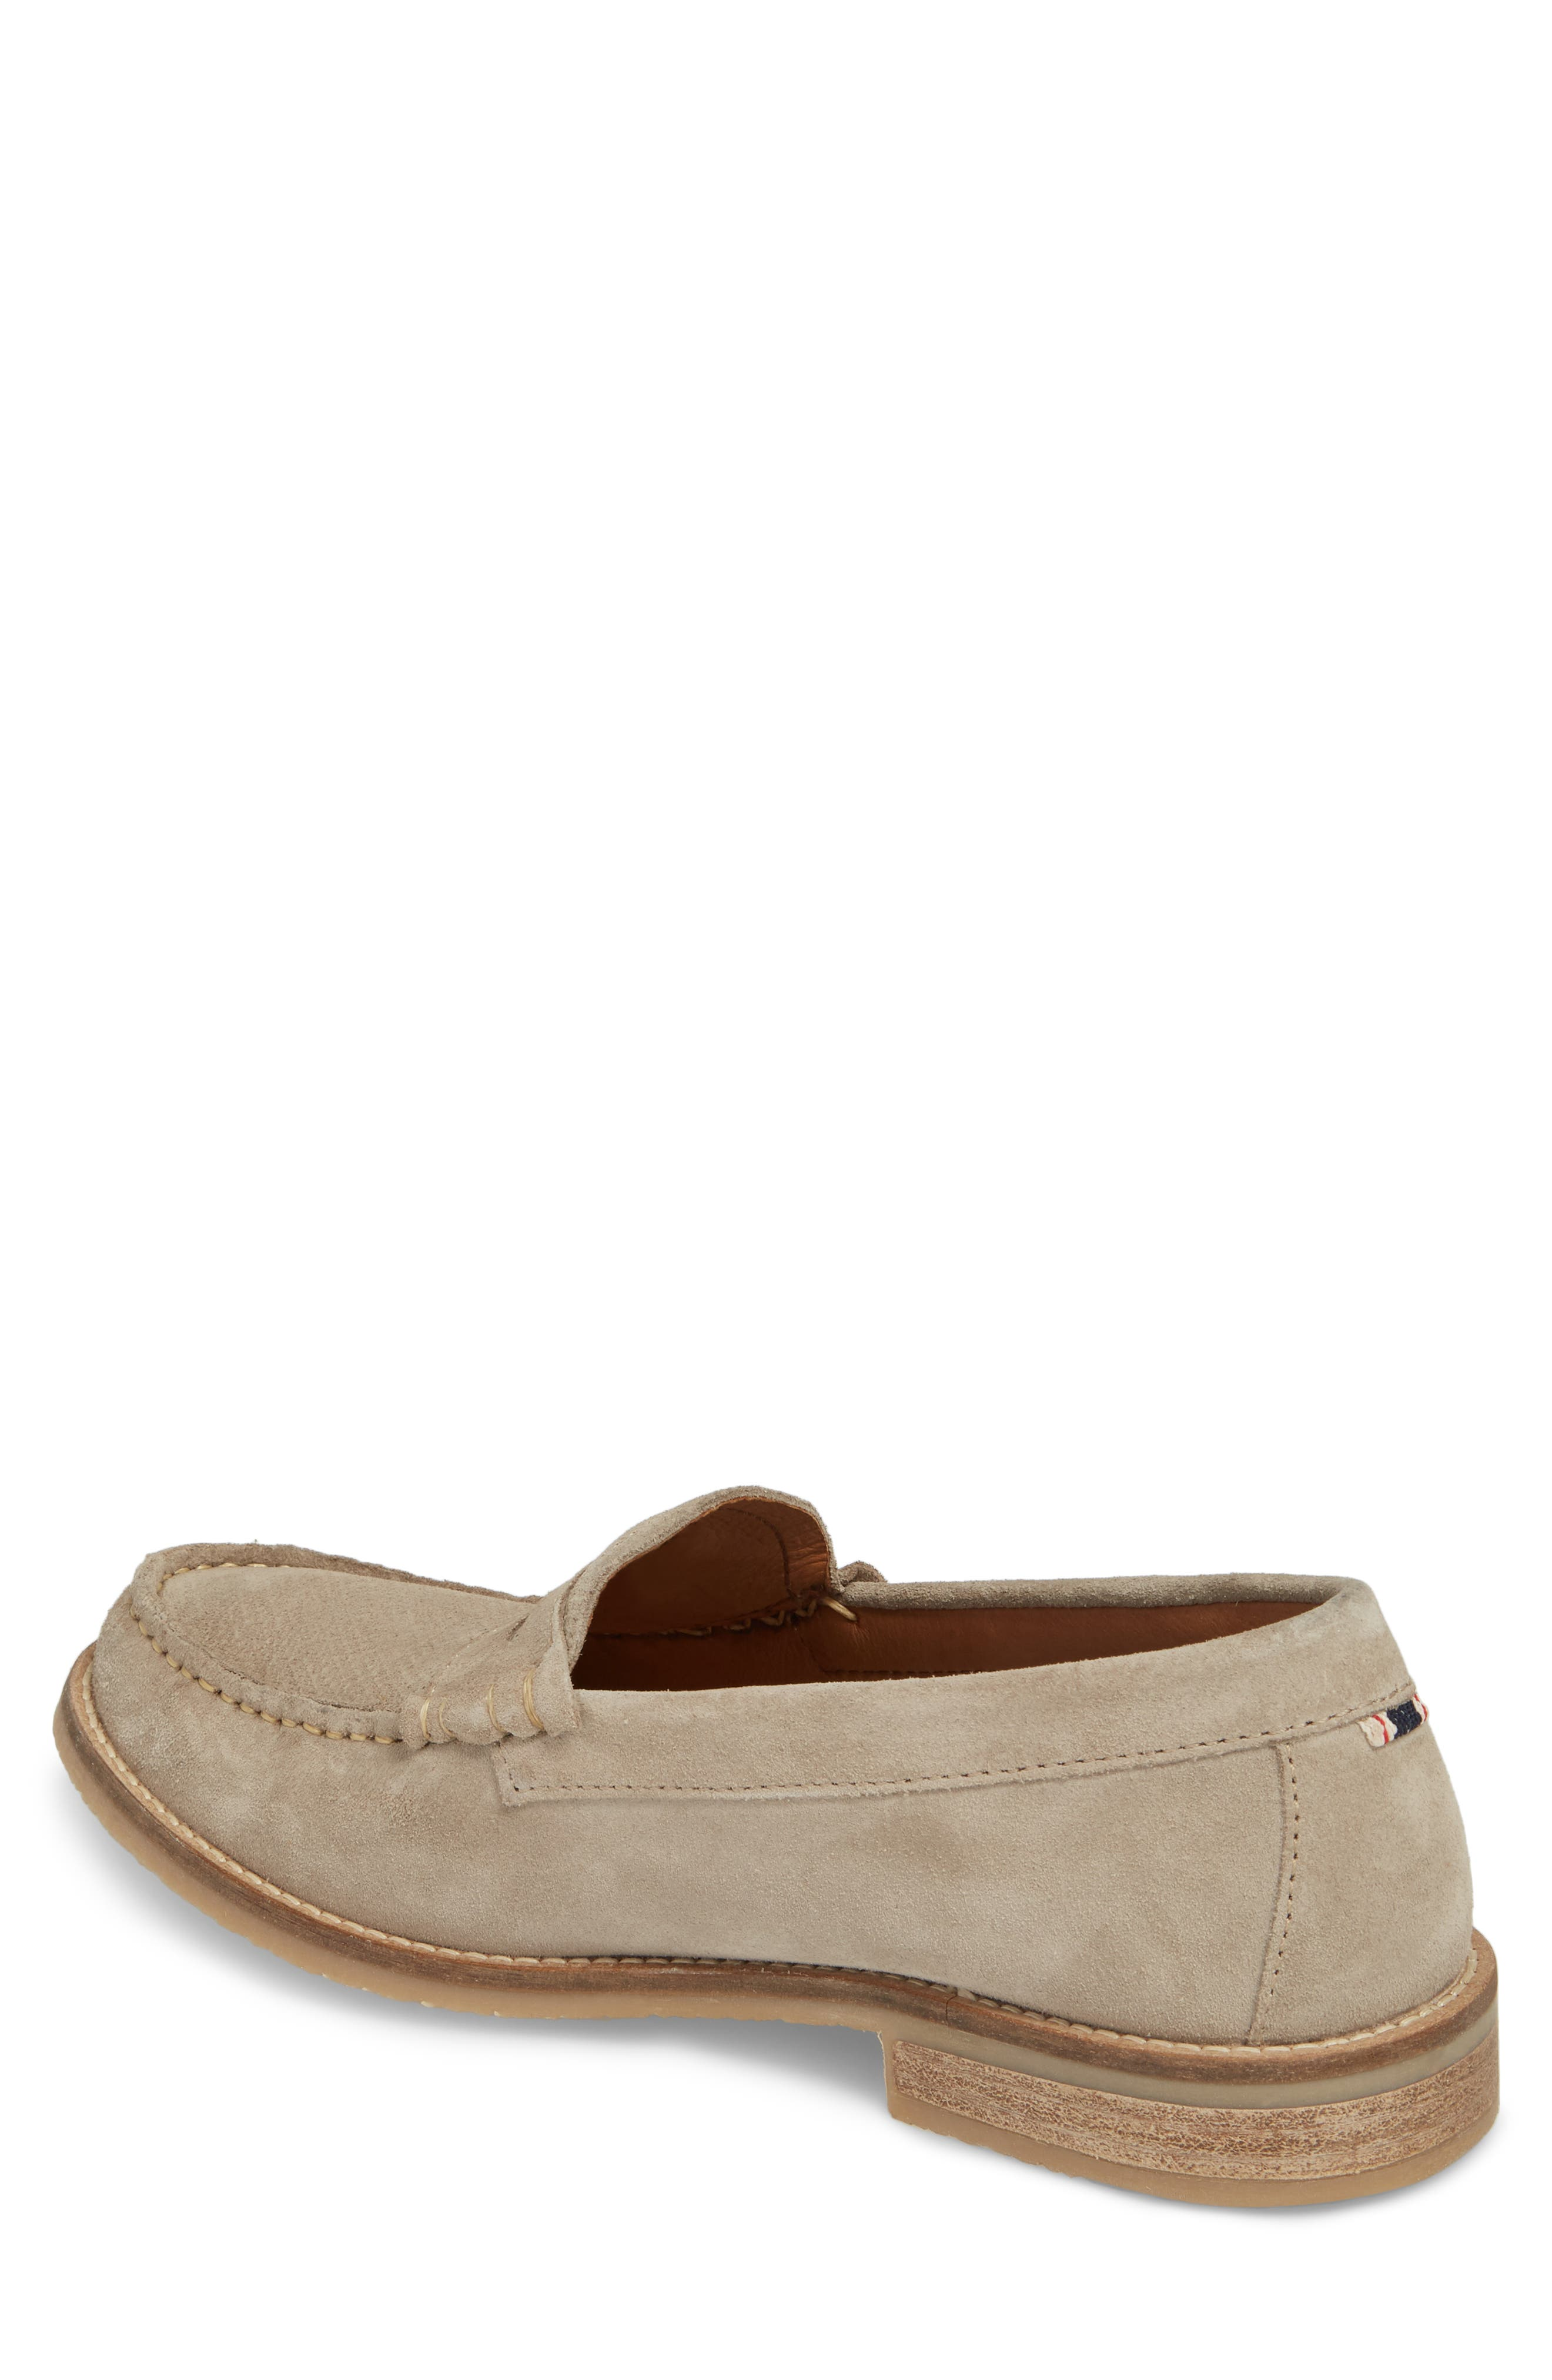 Wayne Textured Penny Loafer,                             Alternate thumbnail 2, color,                             EARTH BEIGE